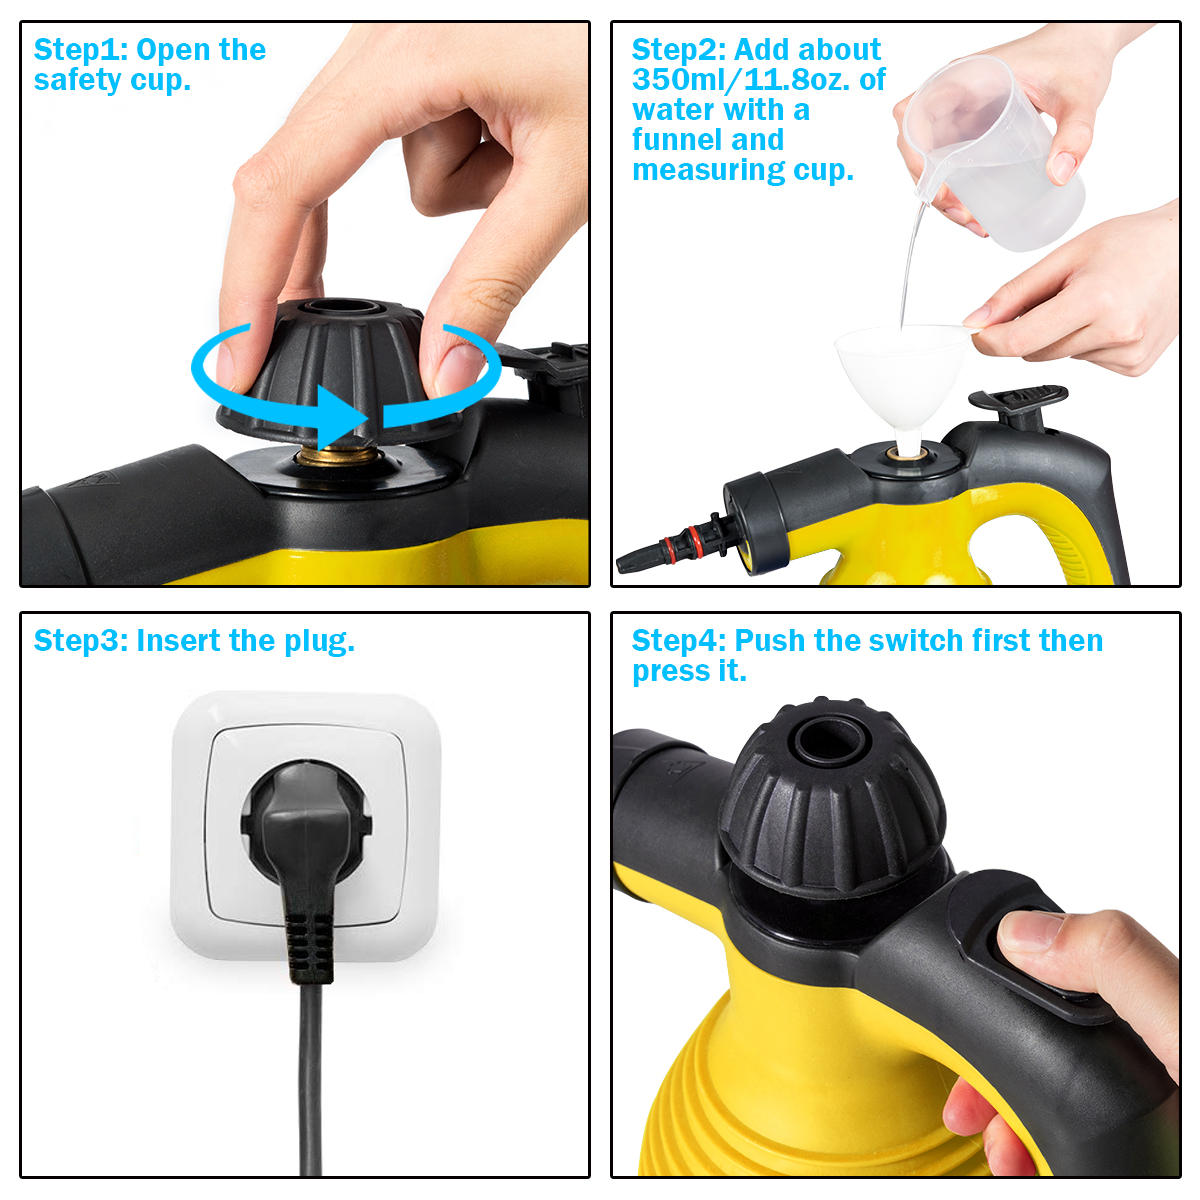 simplyUSAhello 1050 W Multifunction Portable Steamer Household Steam Cleaner with Attachments r